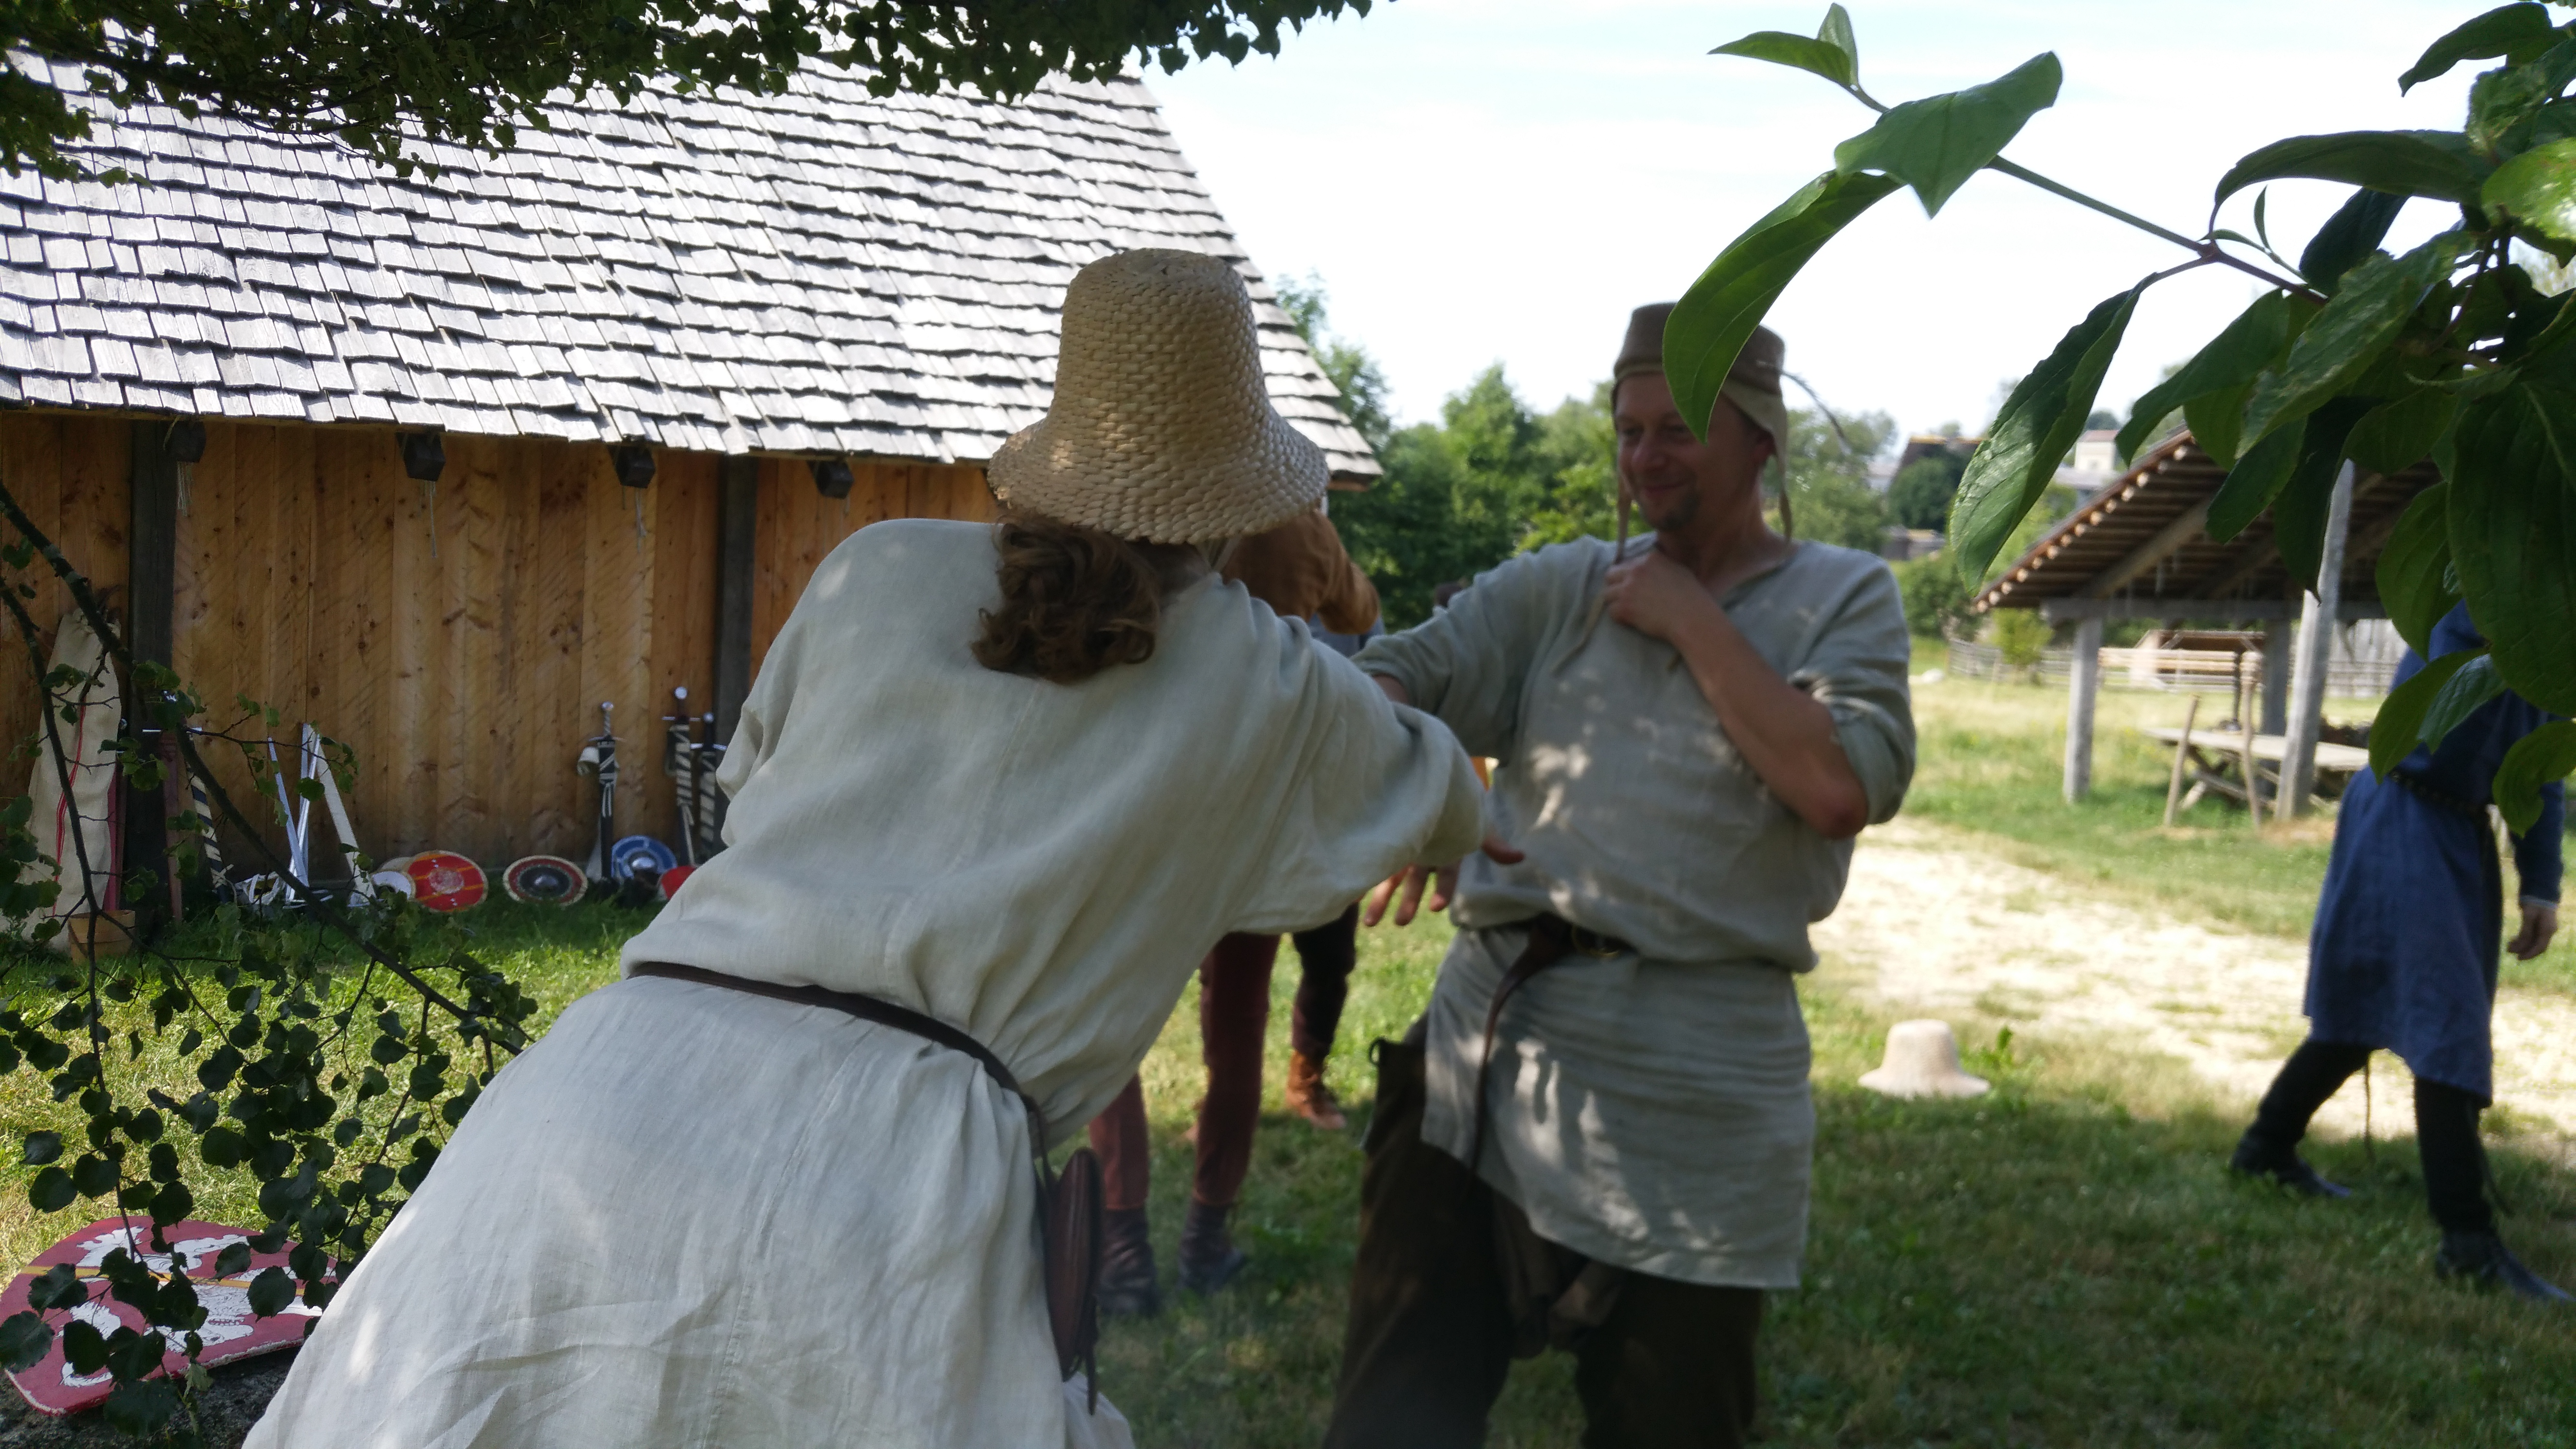 Two men in linen shirts and strraw hats playing a touch game